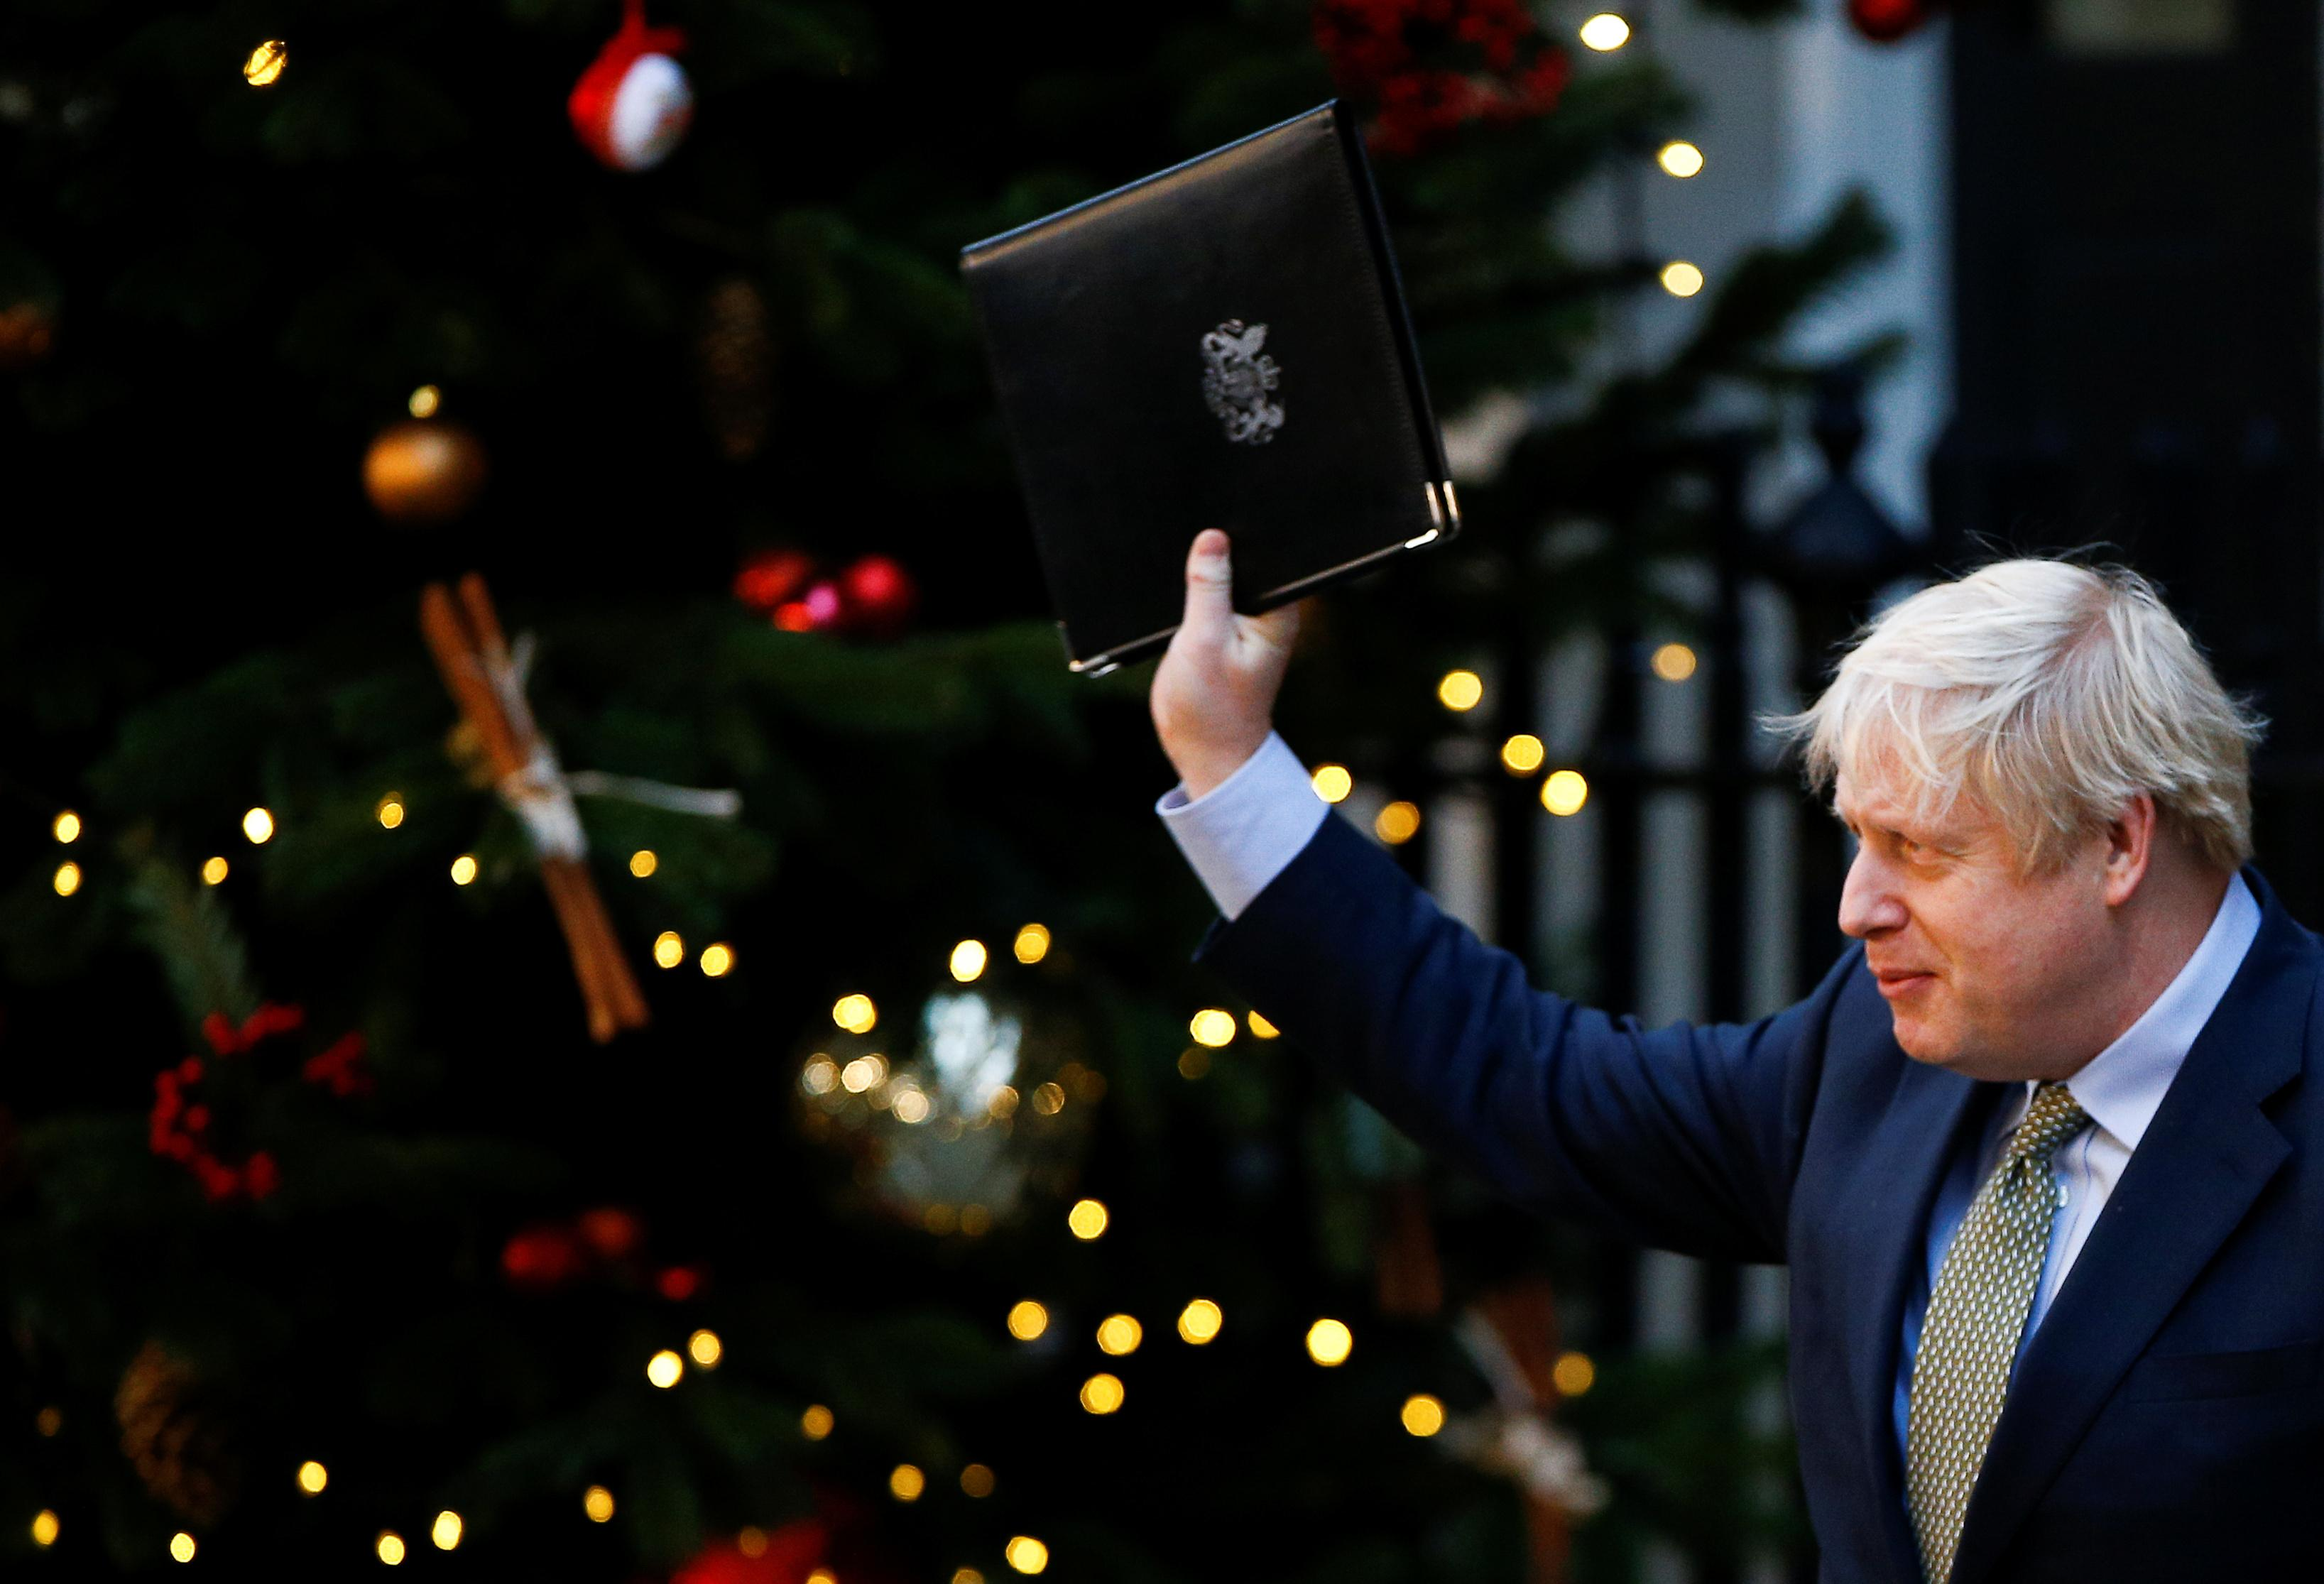 Let Brexit healing begin, Johnson says after commanding election...